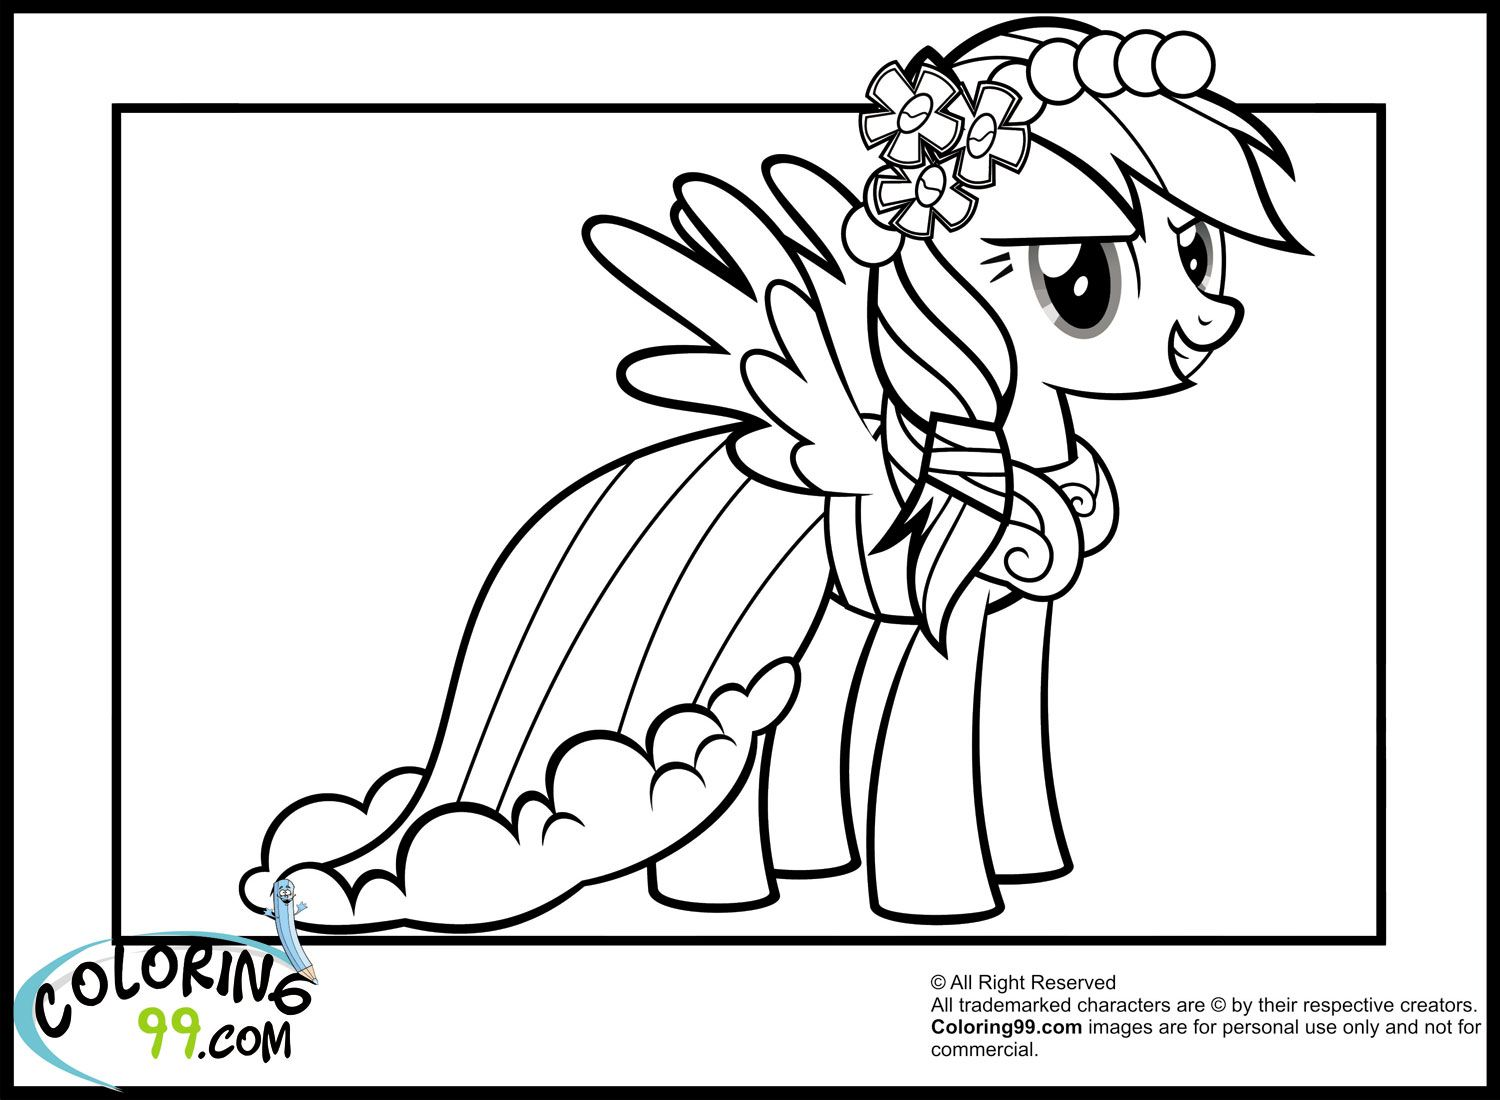 Pin By Lillian Cooley On My Little Pony Coloring Pages Princess Coloring Pages Cartoon Coloring Pages Coloring Pages